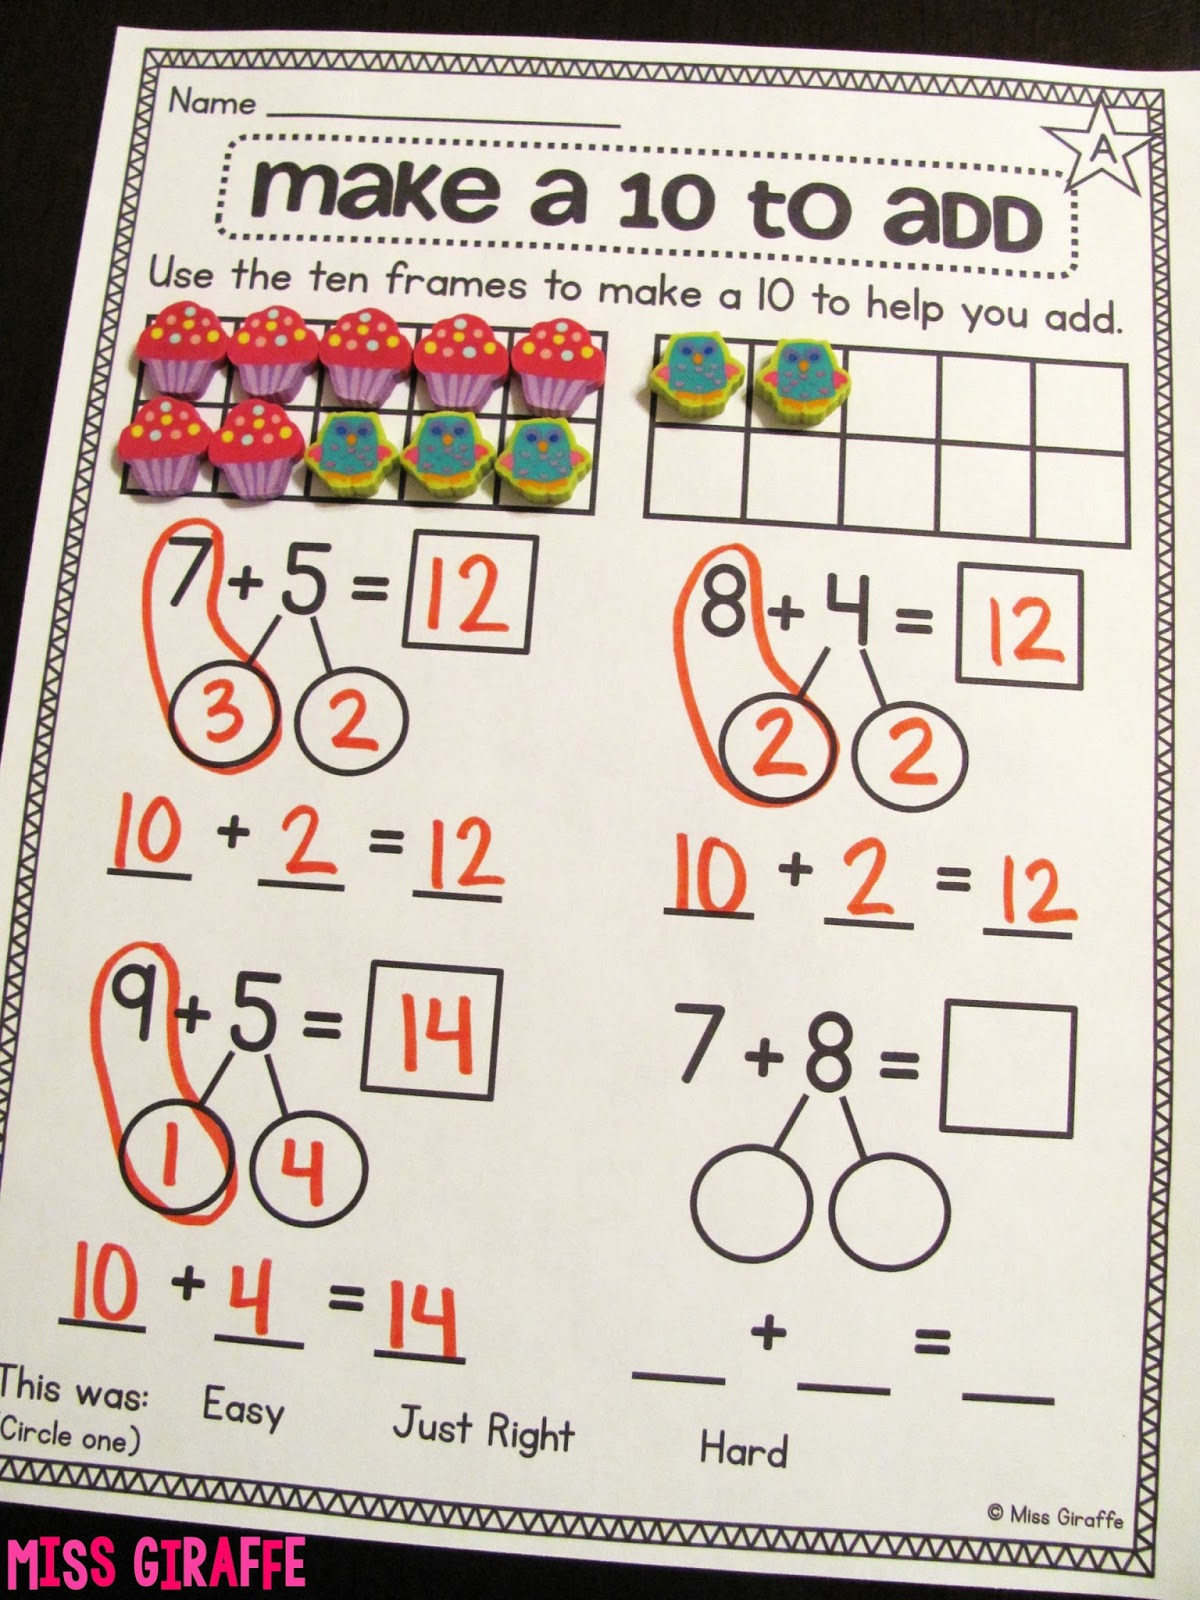 Ten Frame Worksheets First Grade Miss Giraffe S Class Making A 10 to Add